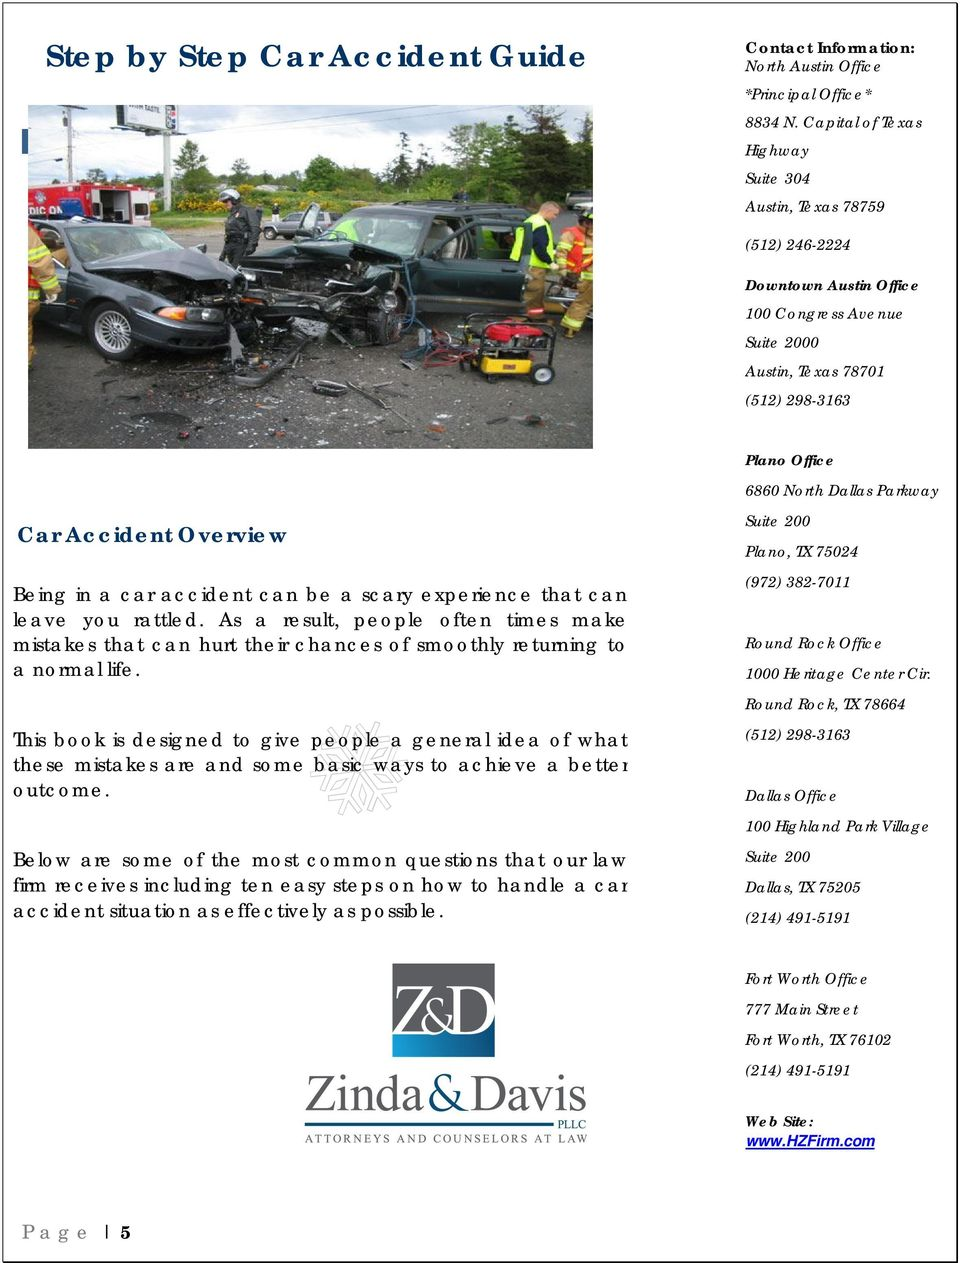 Accident Overview Being in a car accident can be a scary experience that can leave you rattled.